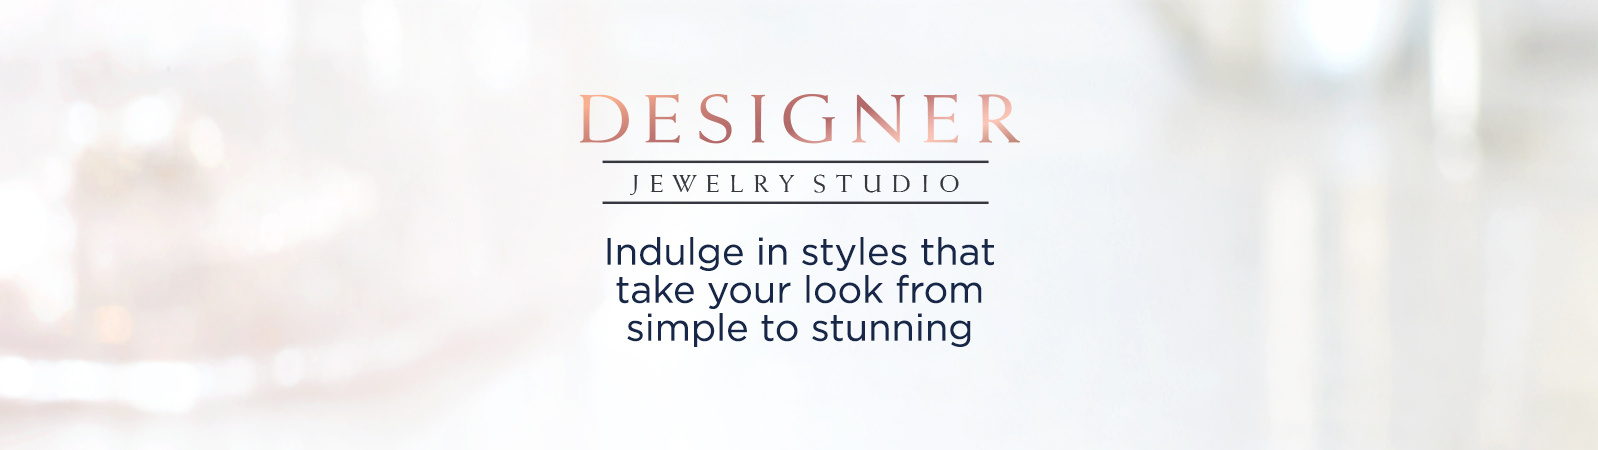 Designer Jewelry Studio, Indulge in styles that take your look from simple to stunning